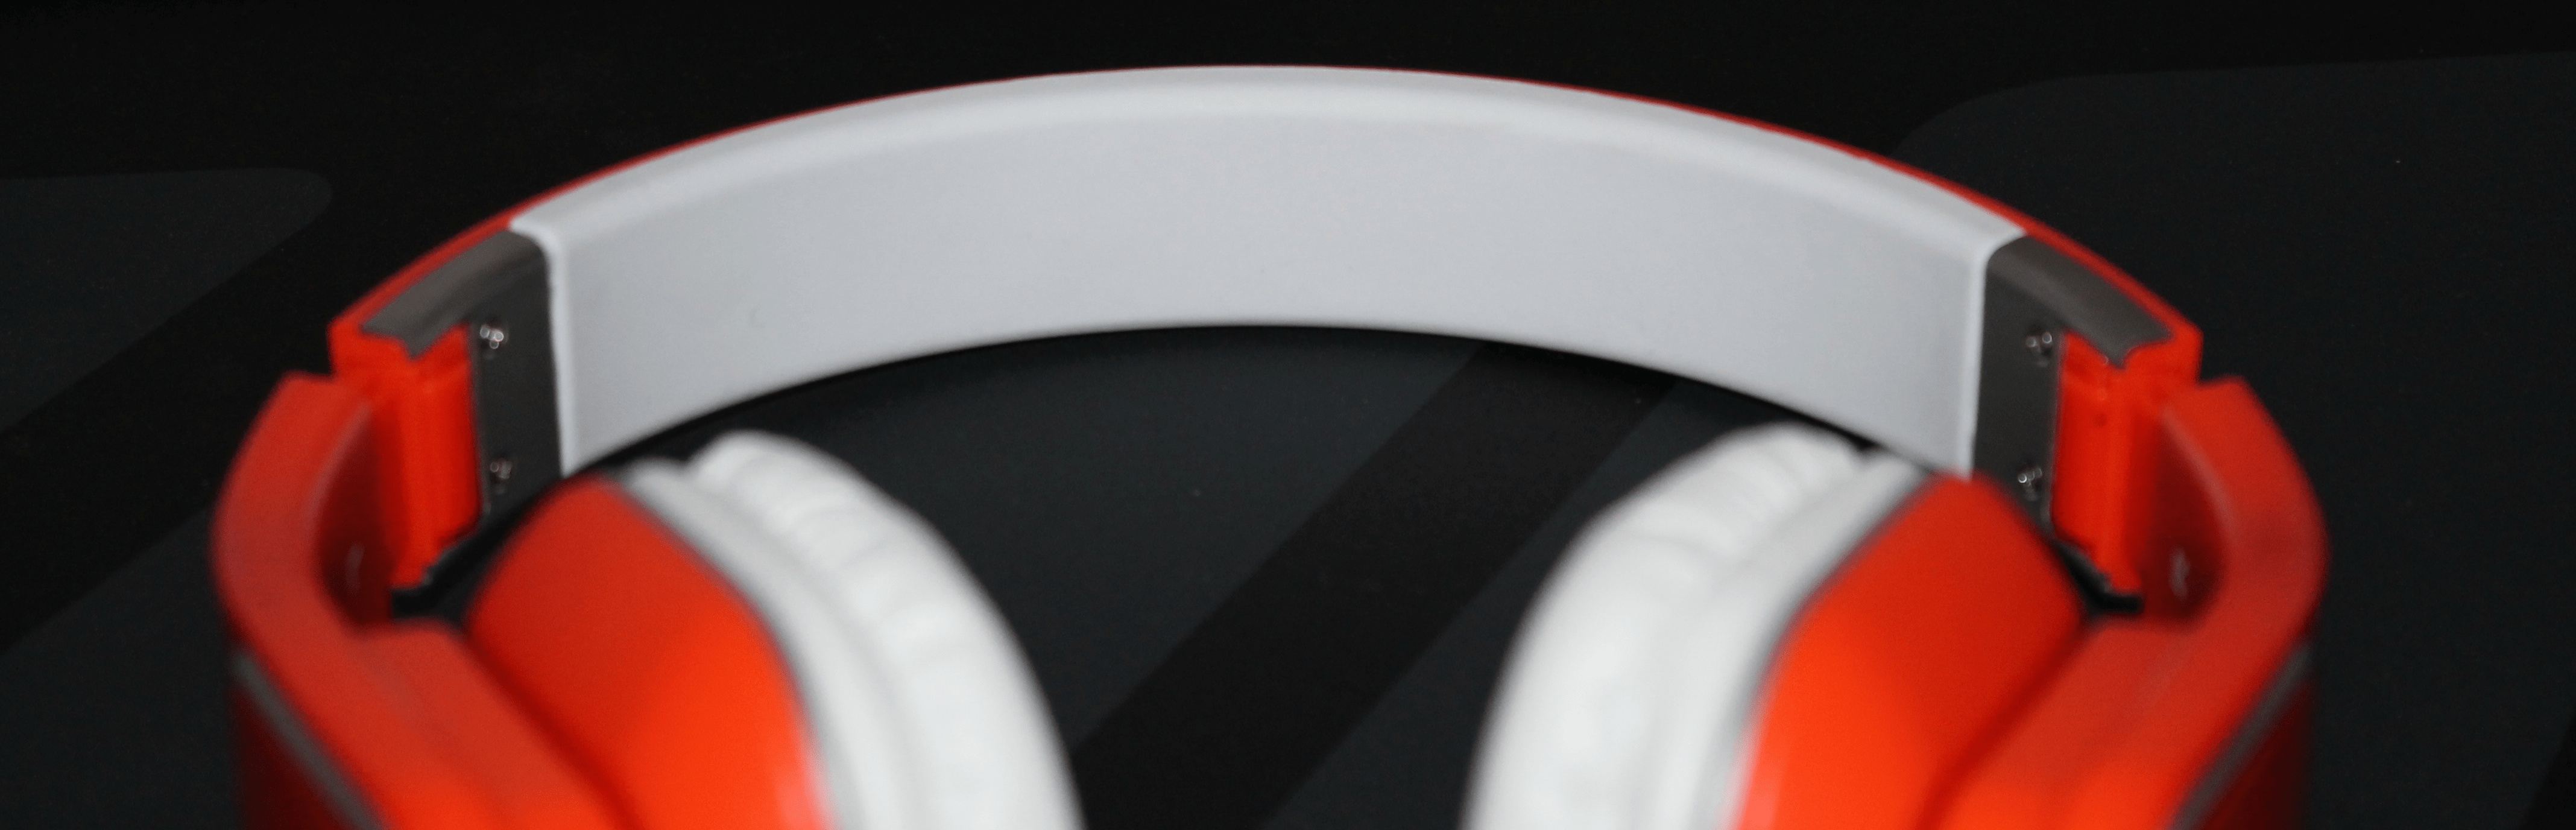 Attitude One Almaz Headset Review